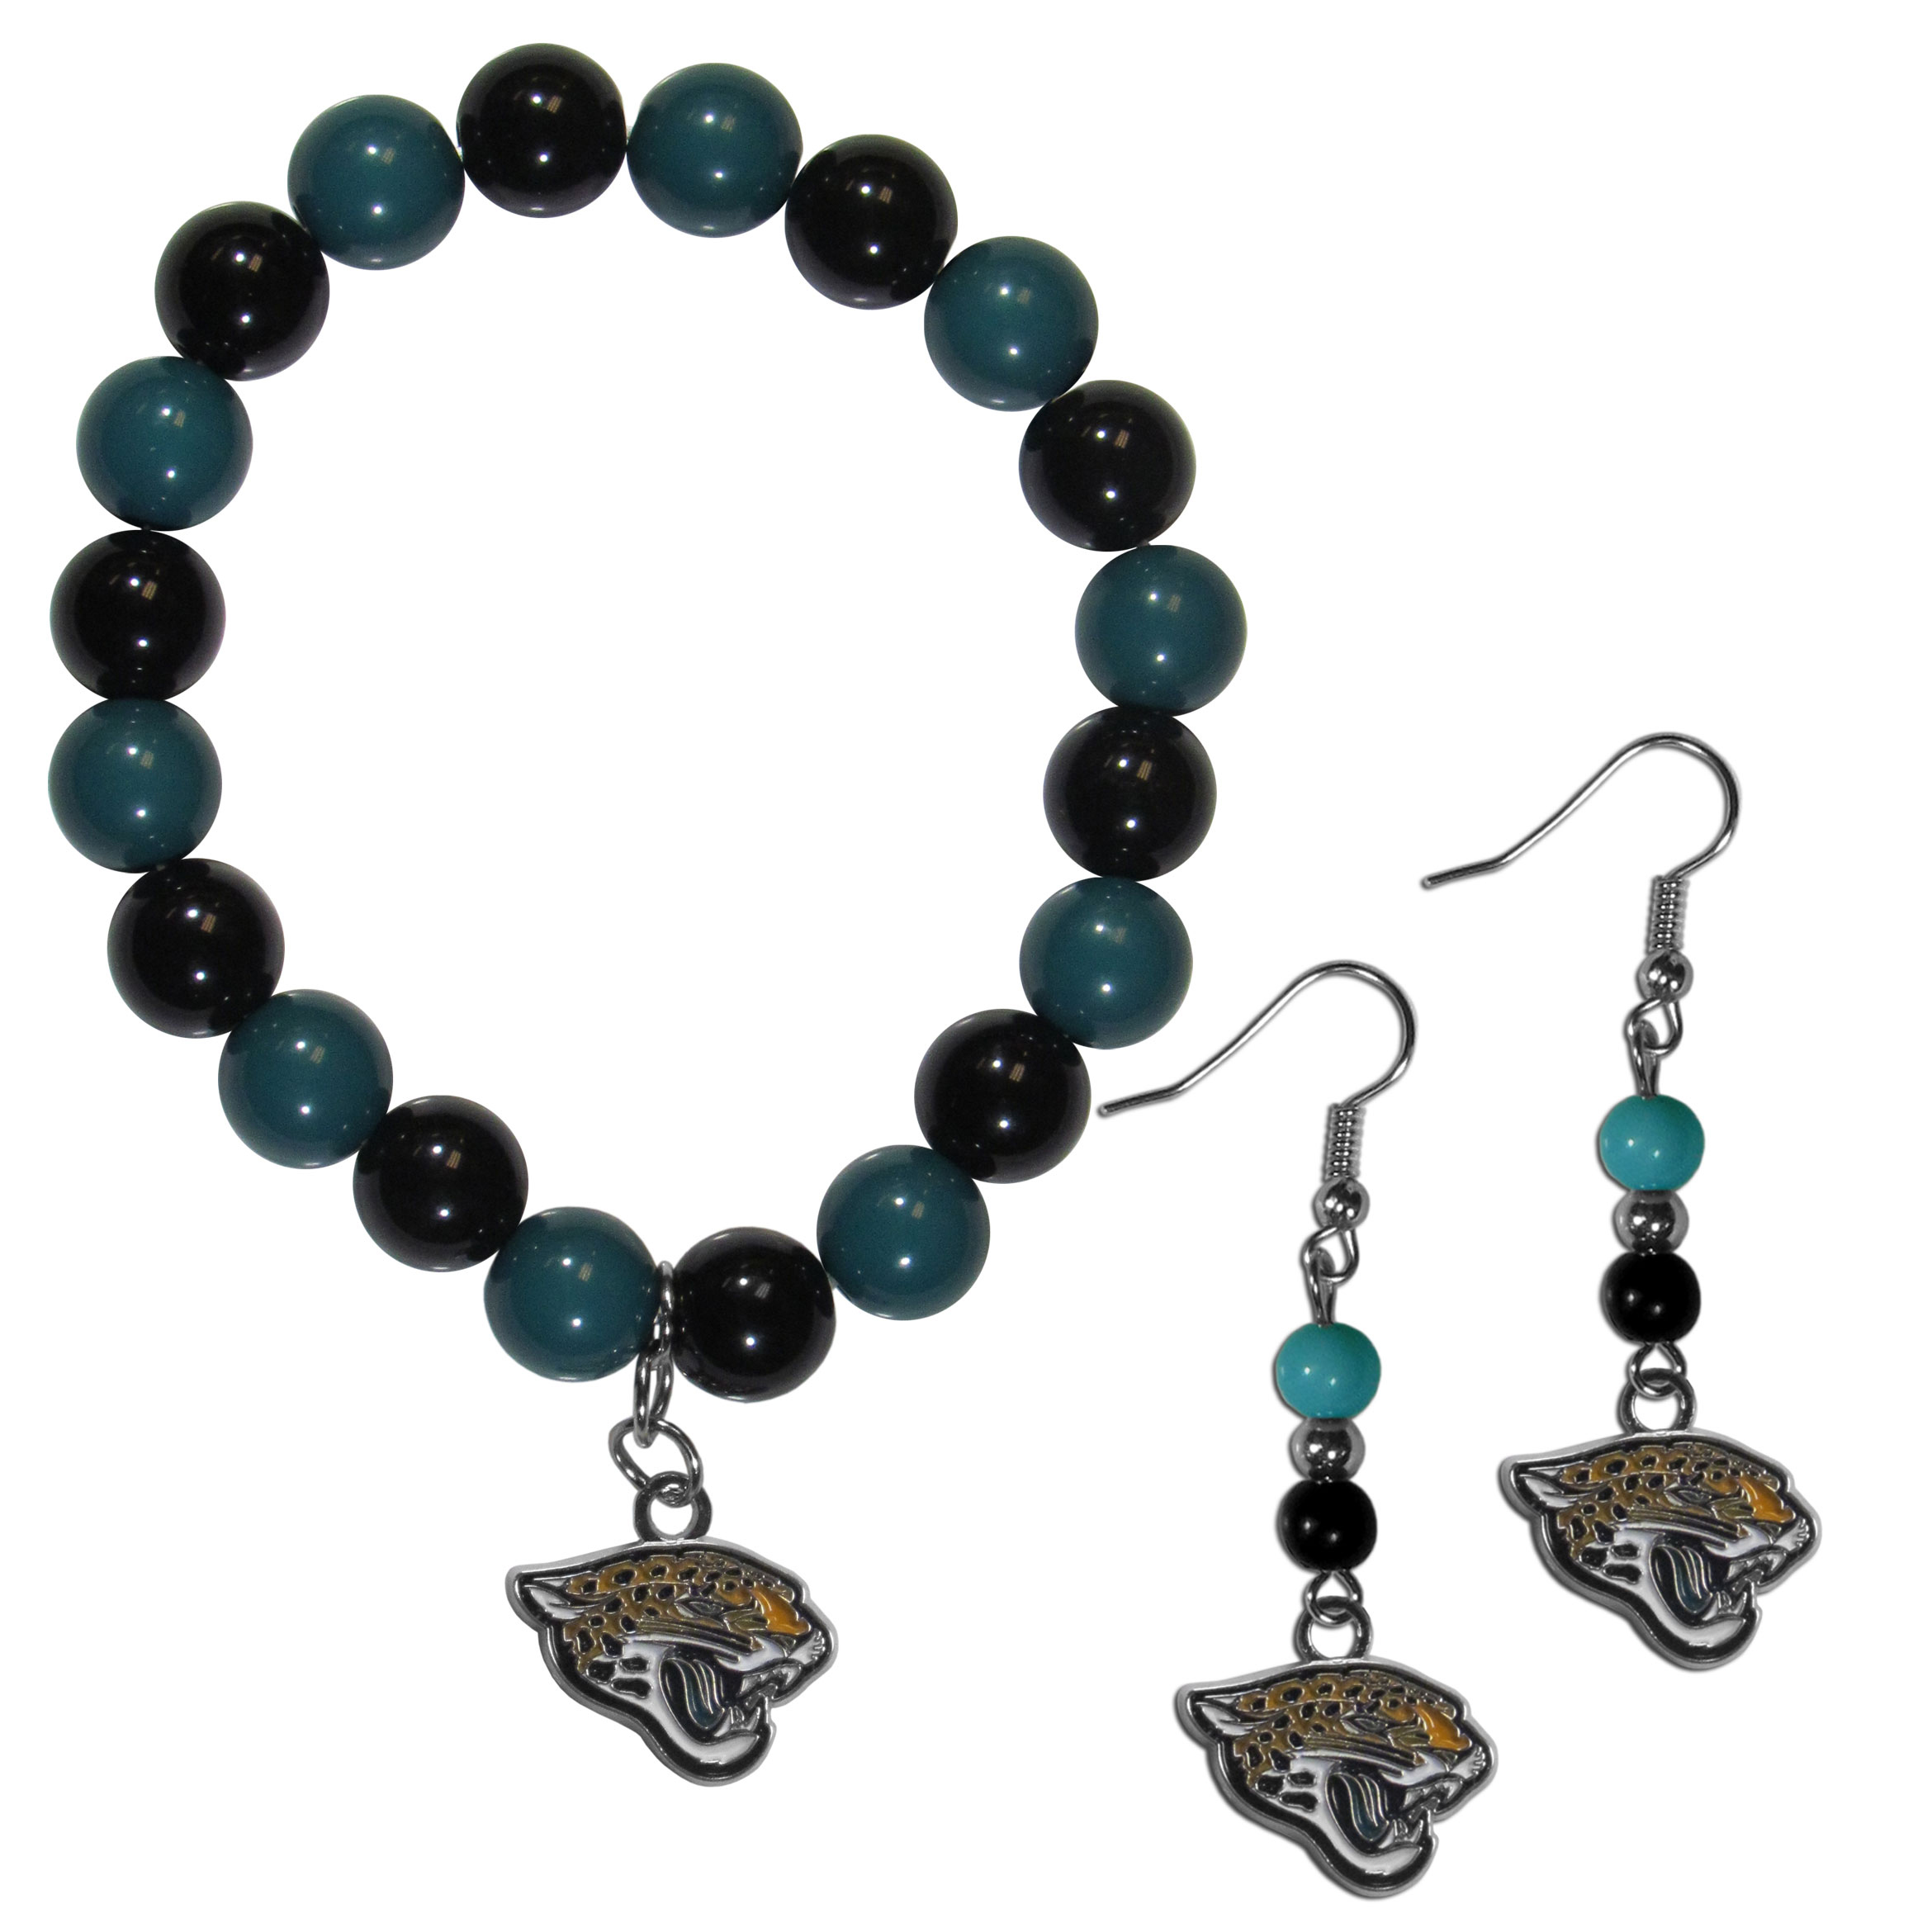 Jacksonville Jaguars Fan Bead Earrings and Bracelet Set - This fun and colorful Jacksonville Jaguars fan bead jewelry set is fun and casual with eye-catching beads in bright team colors. The fashionable dangle earrings feature a team colored beads that drop down to a carved and enameled charm. The stretch bracelet has larger matching beads that make a striking statement and have a matching team charm. These sassy yet sporty jewelry pieces make a perfect gift for any female fan. Spice up your game-day outfit with these fun colorful earrings and bracelet that are also cute enough for any day.